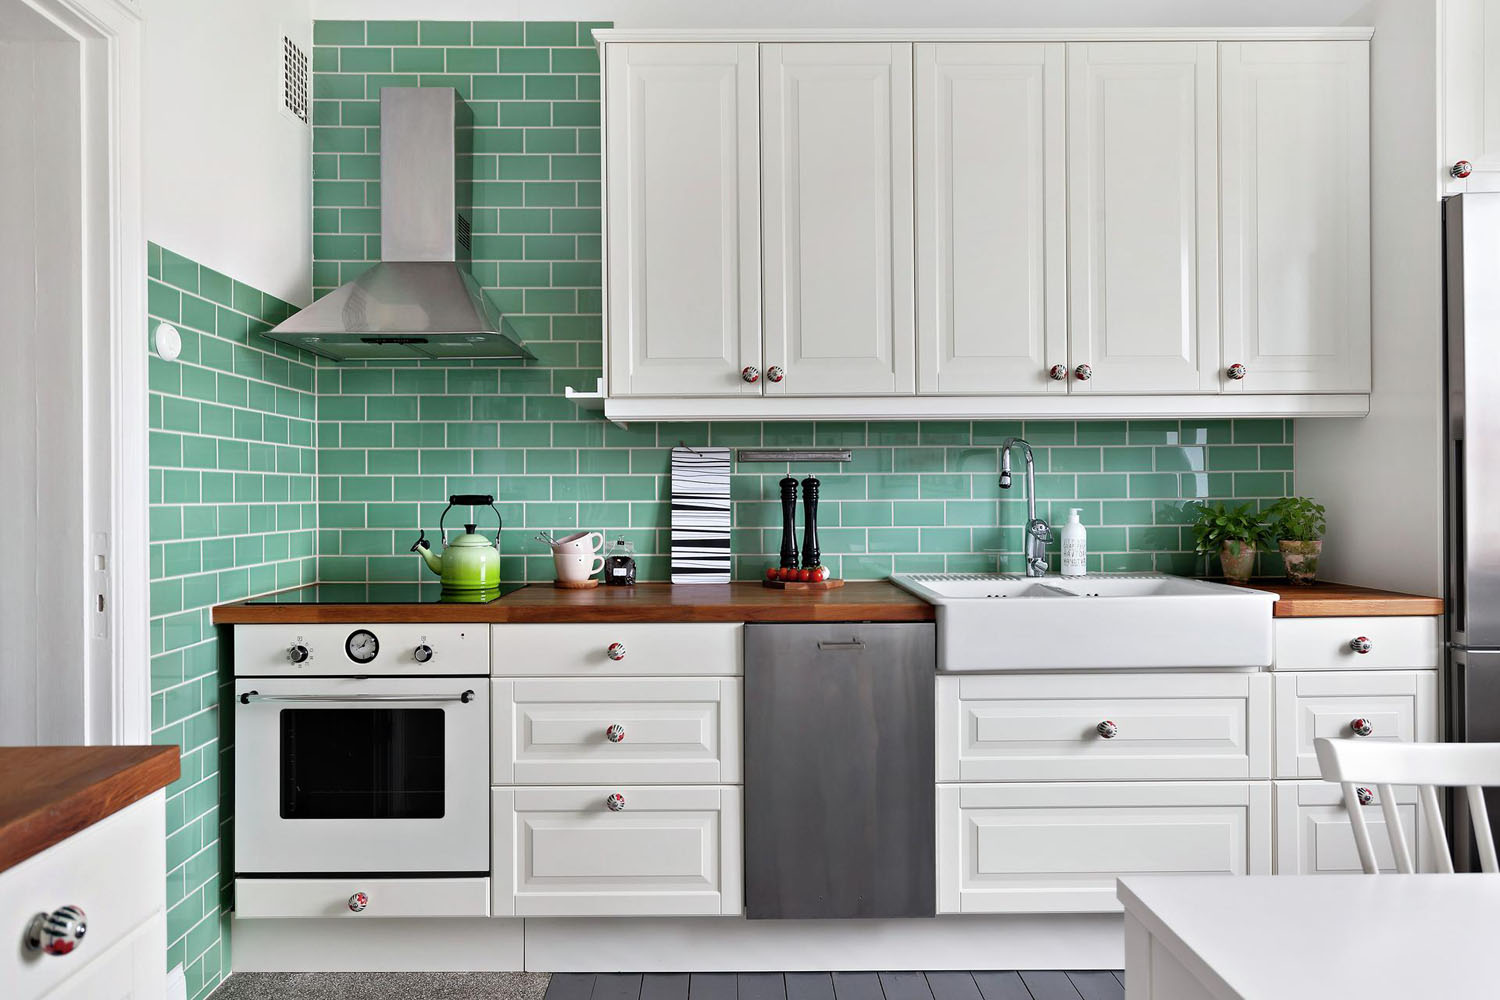 green ikea kitchen kitchen and interior ideas rh ioocoyneia slashed store ikea green kitchen doors ikea green kitchen doors